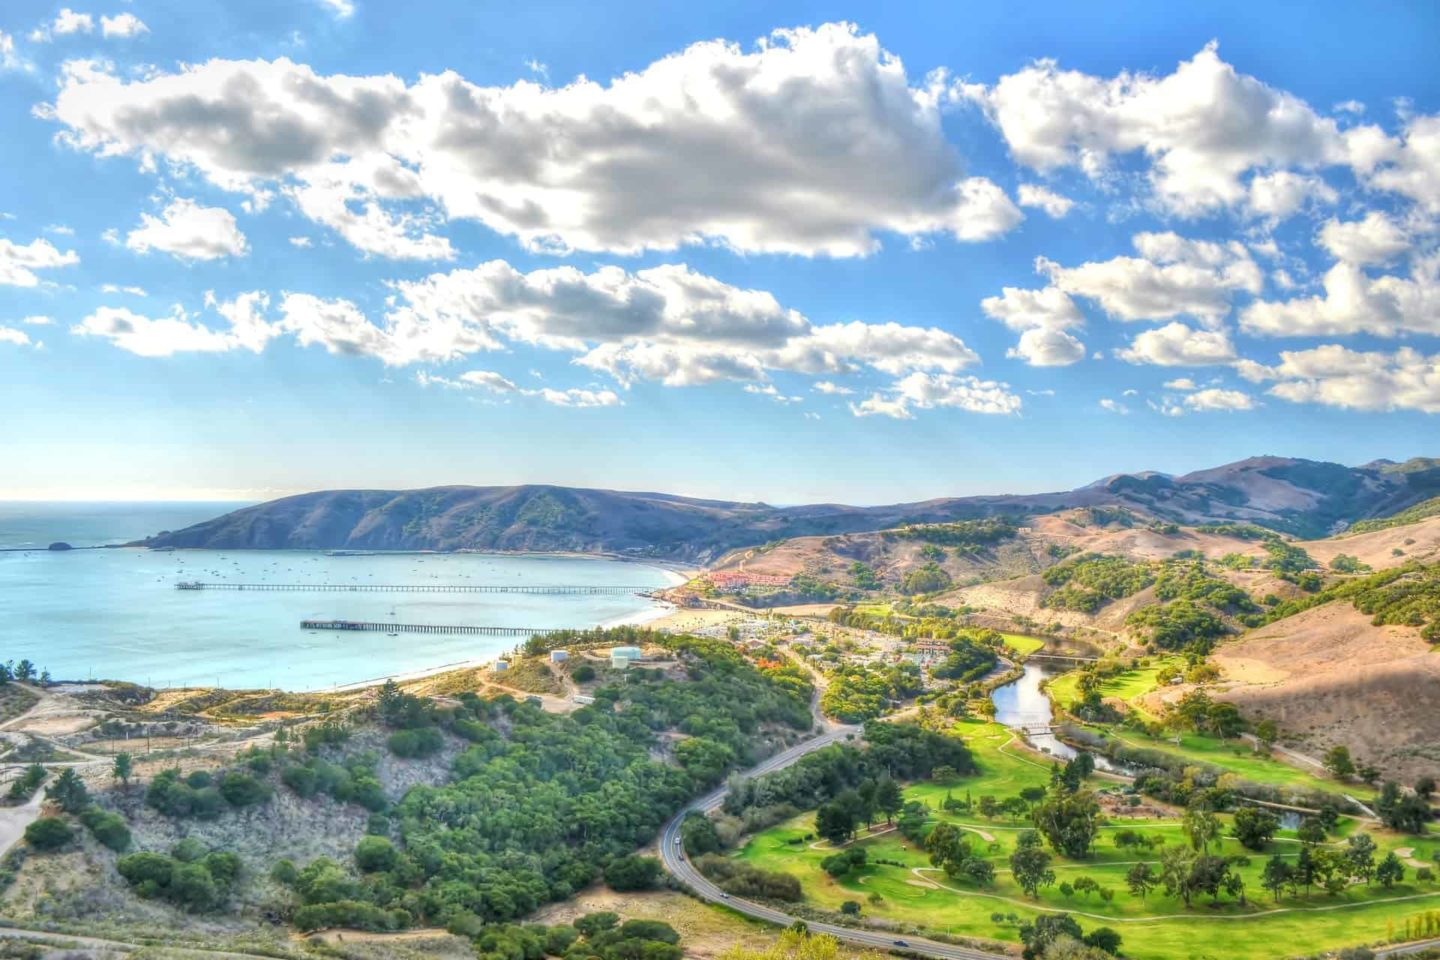 Drone view of Avila Beach